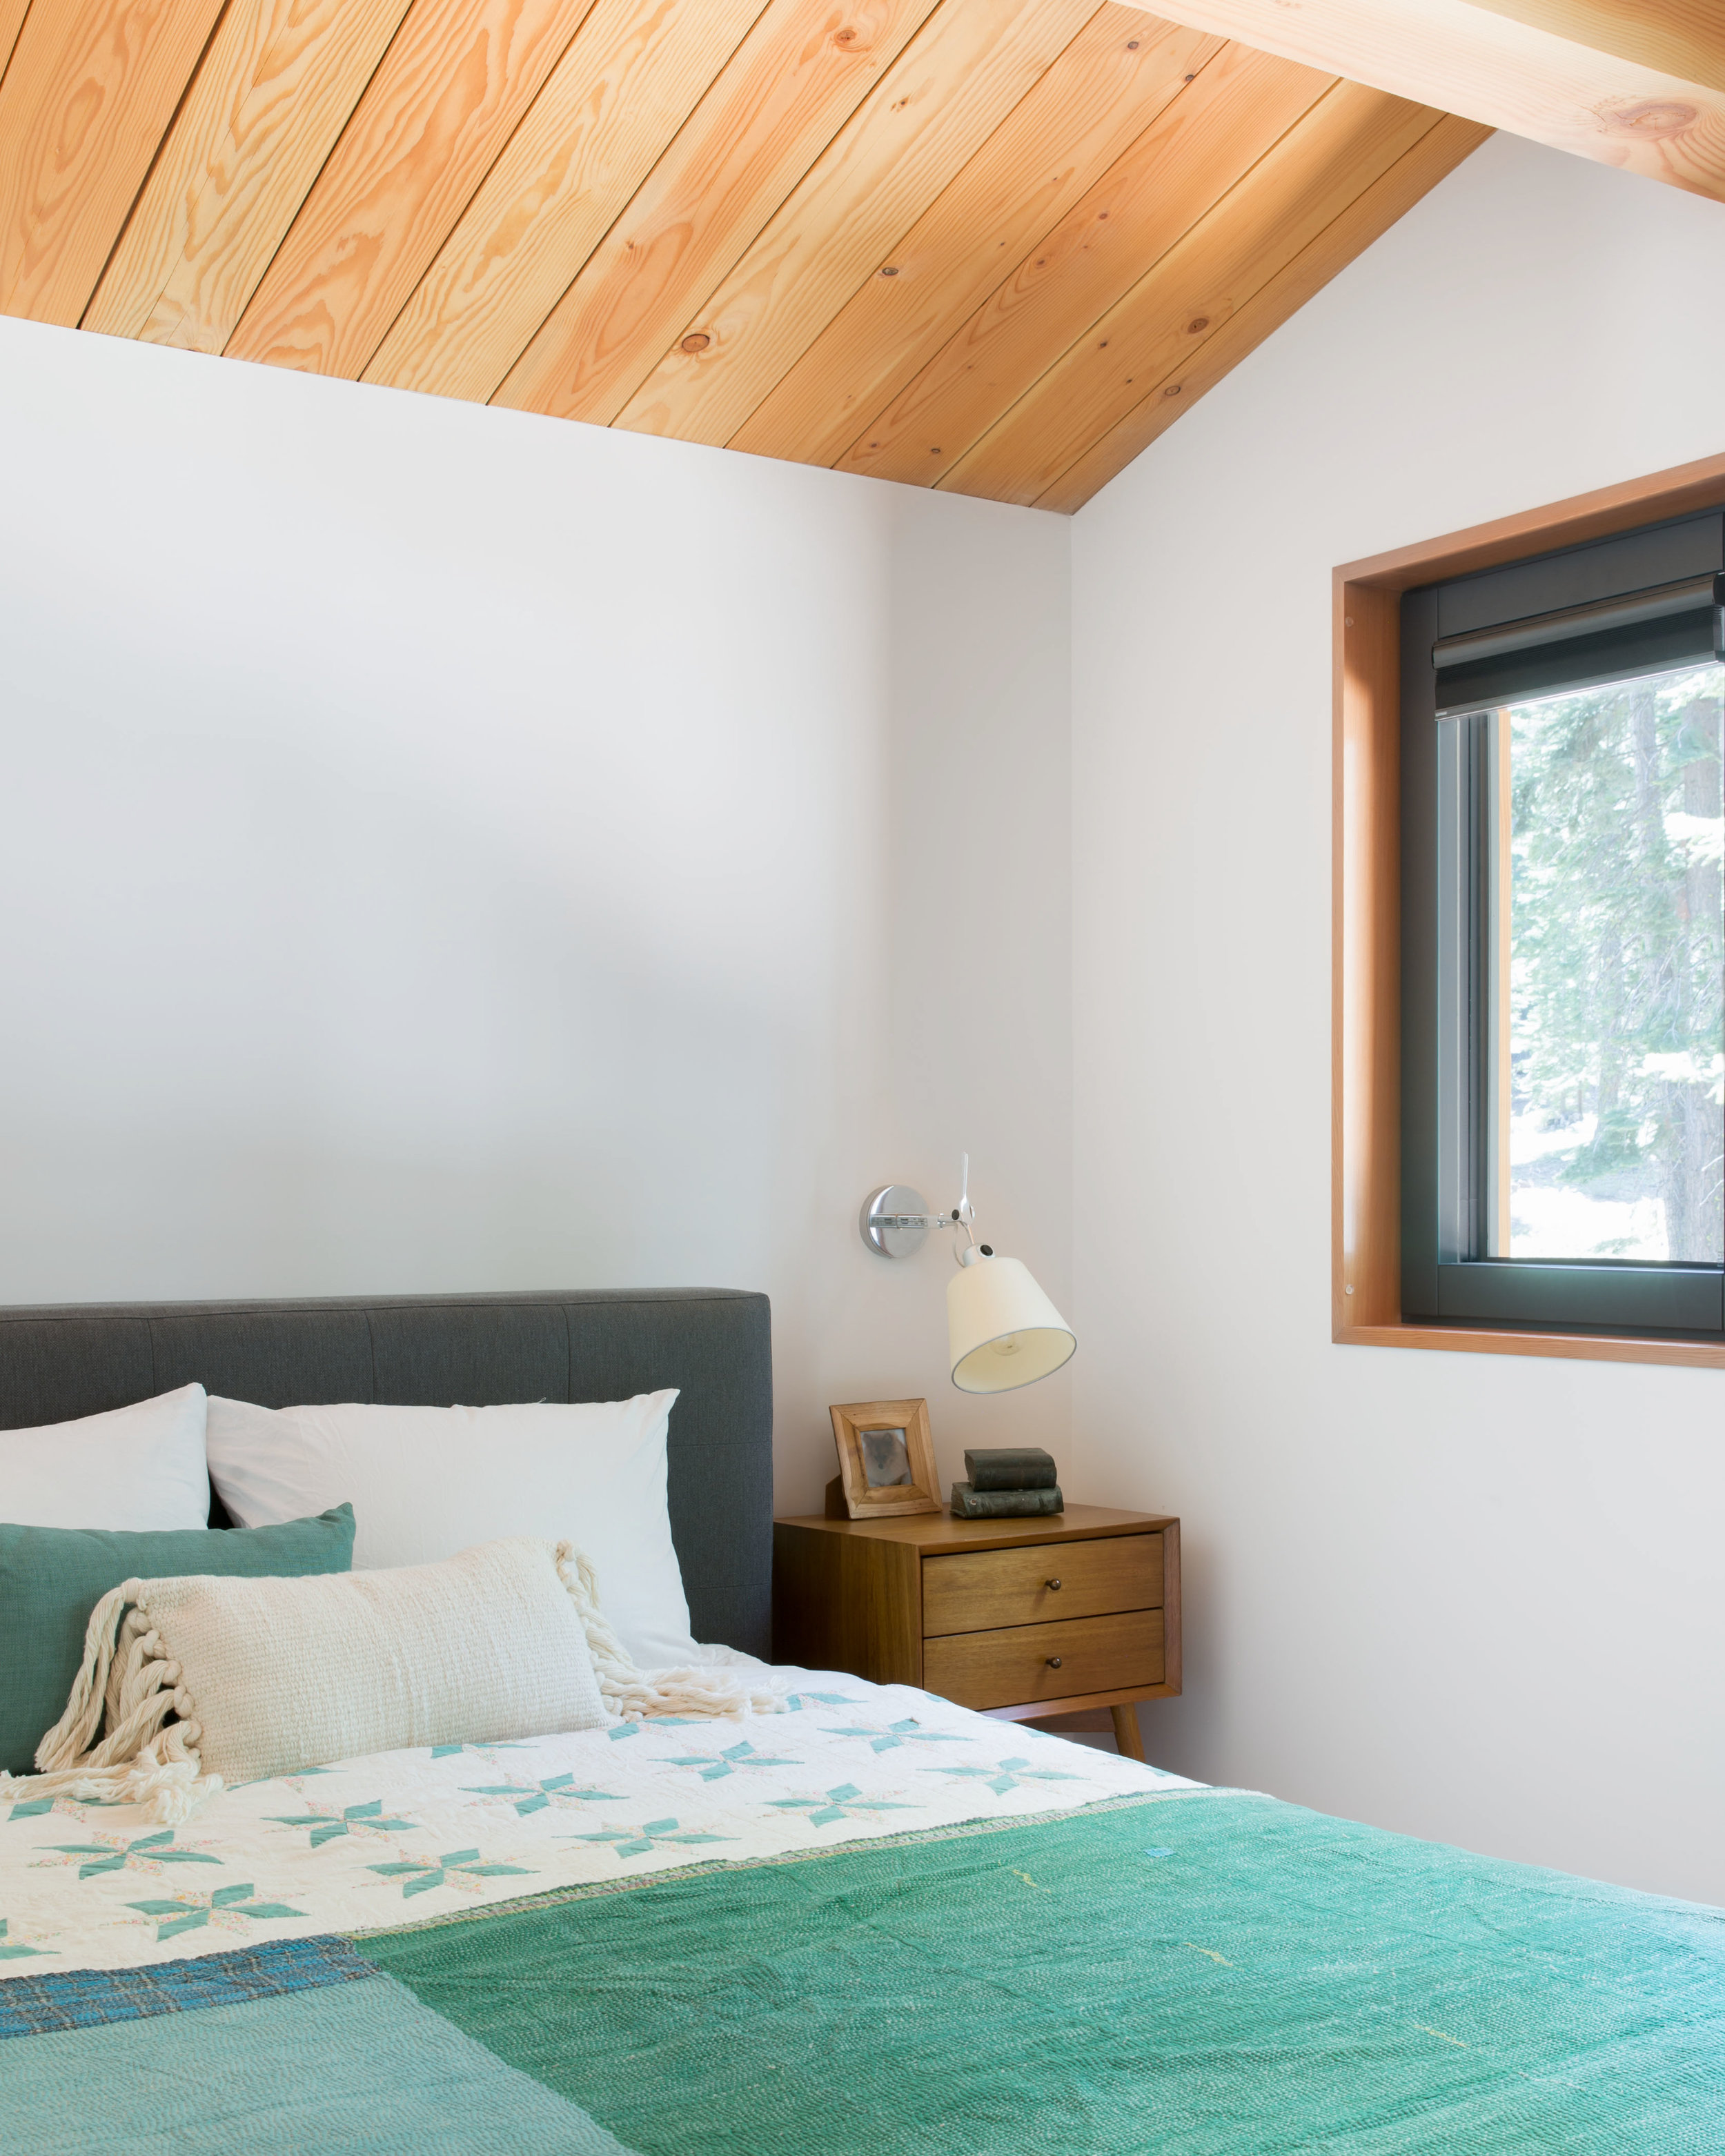 17_RBD_WOODSY TAHOE CABIN - GUEST BEDROOM UP.jpg